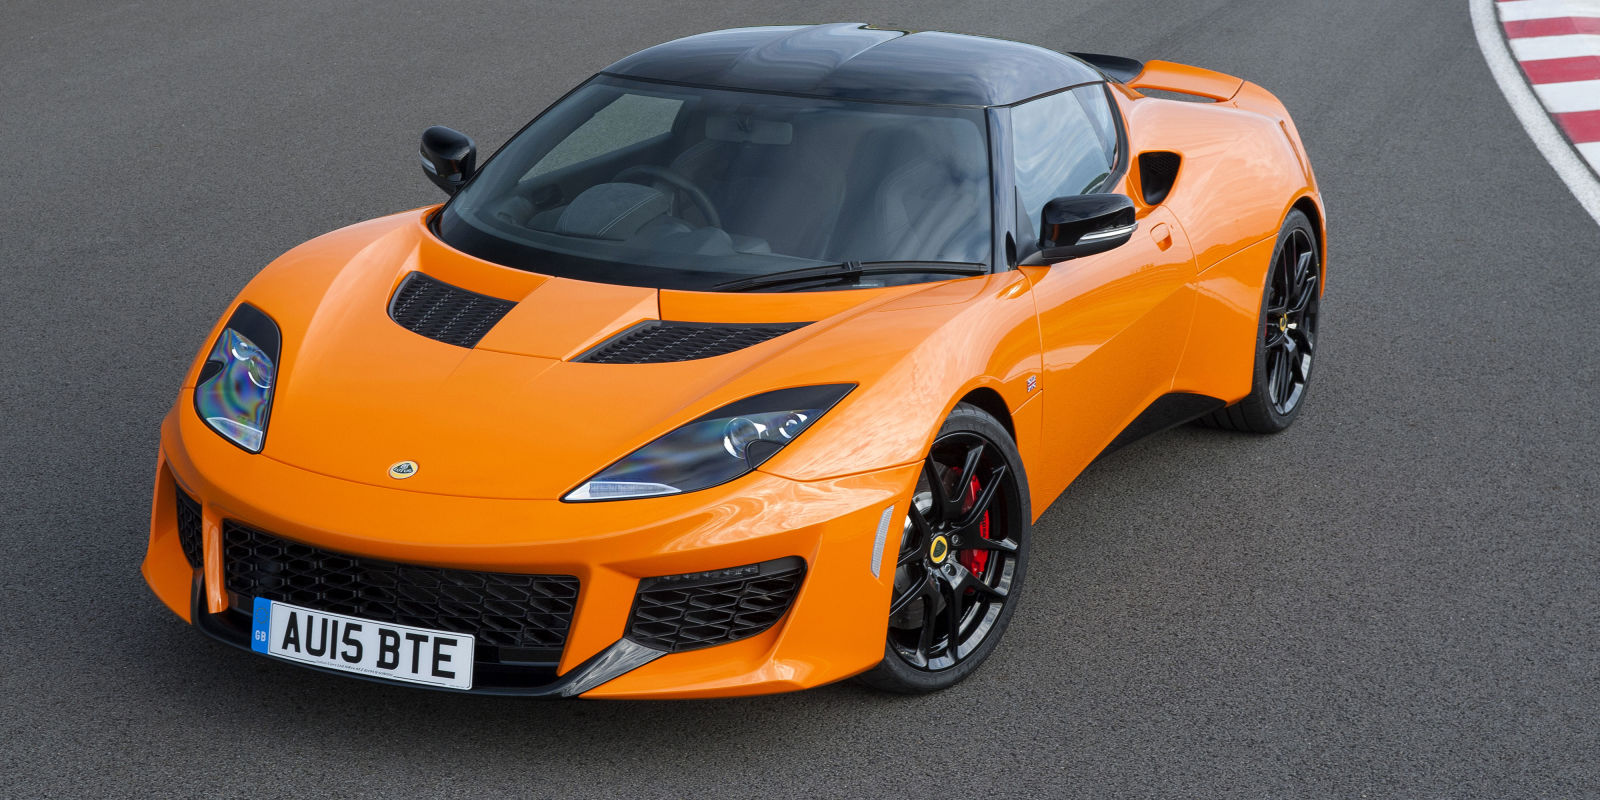 2016 Lotus Evora 400 - First Drive